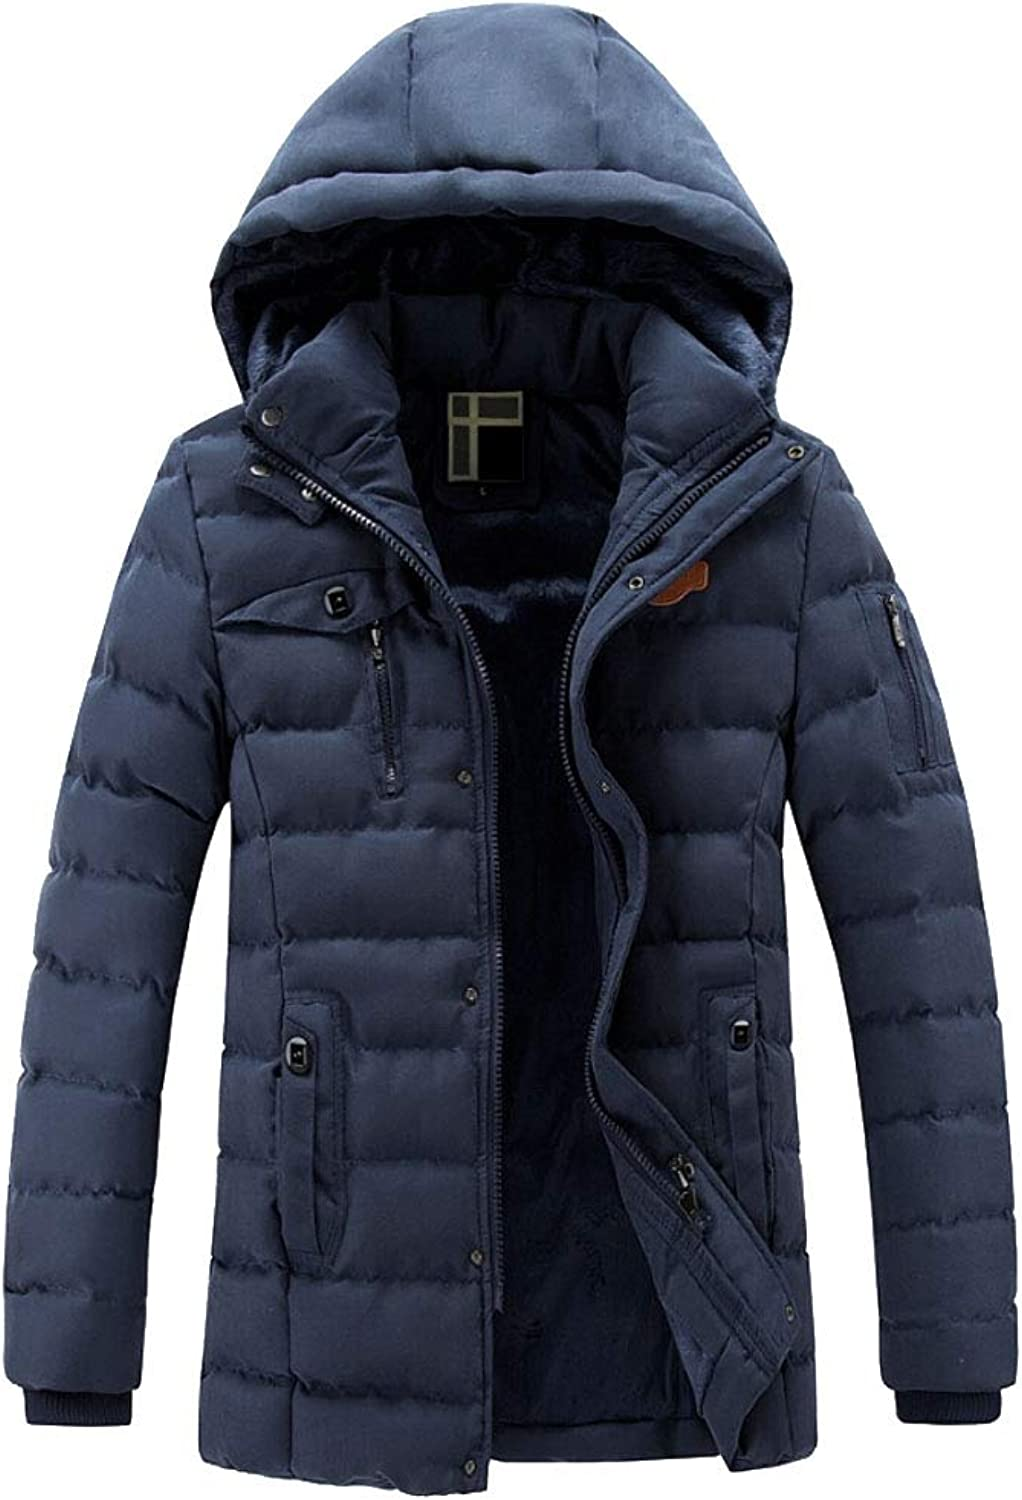 Maweisong Men Warm Thicken Cotton Parka Removable Hood Jacket Coats